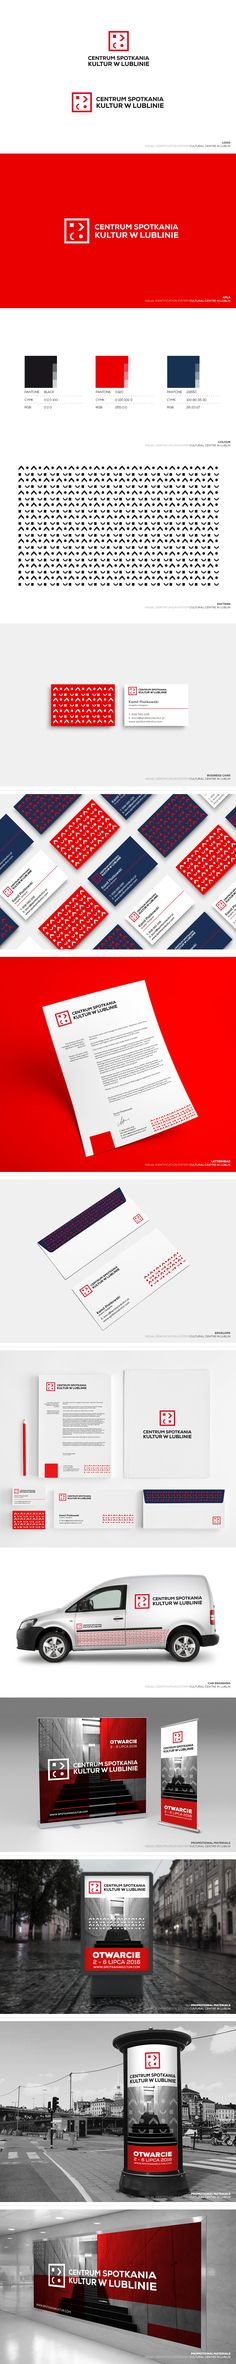 CULTURAL CENTRE IN LUBLIN BRANDING on Behance